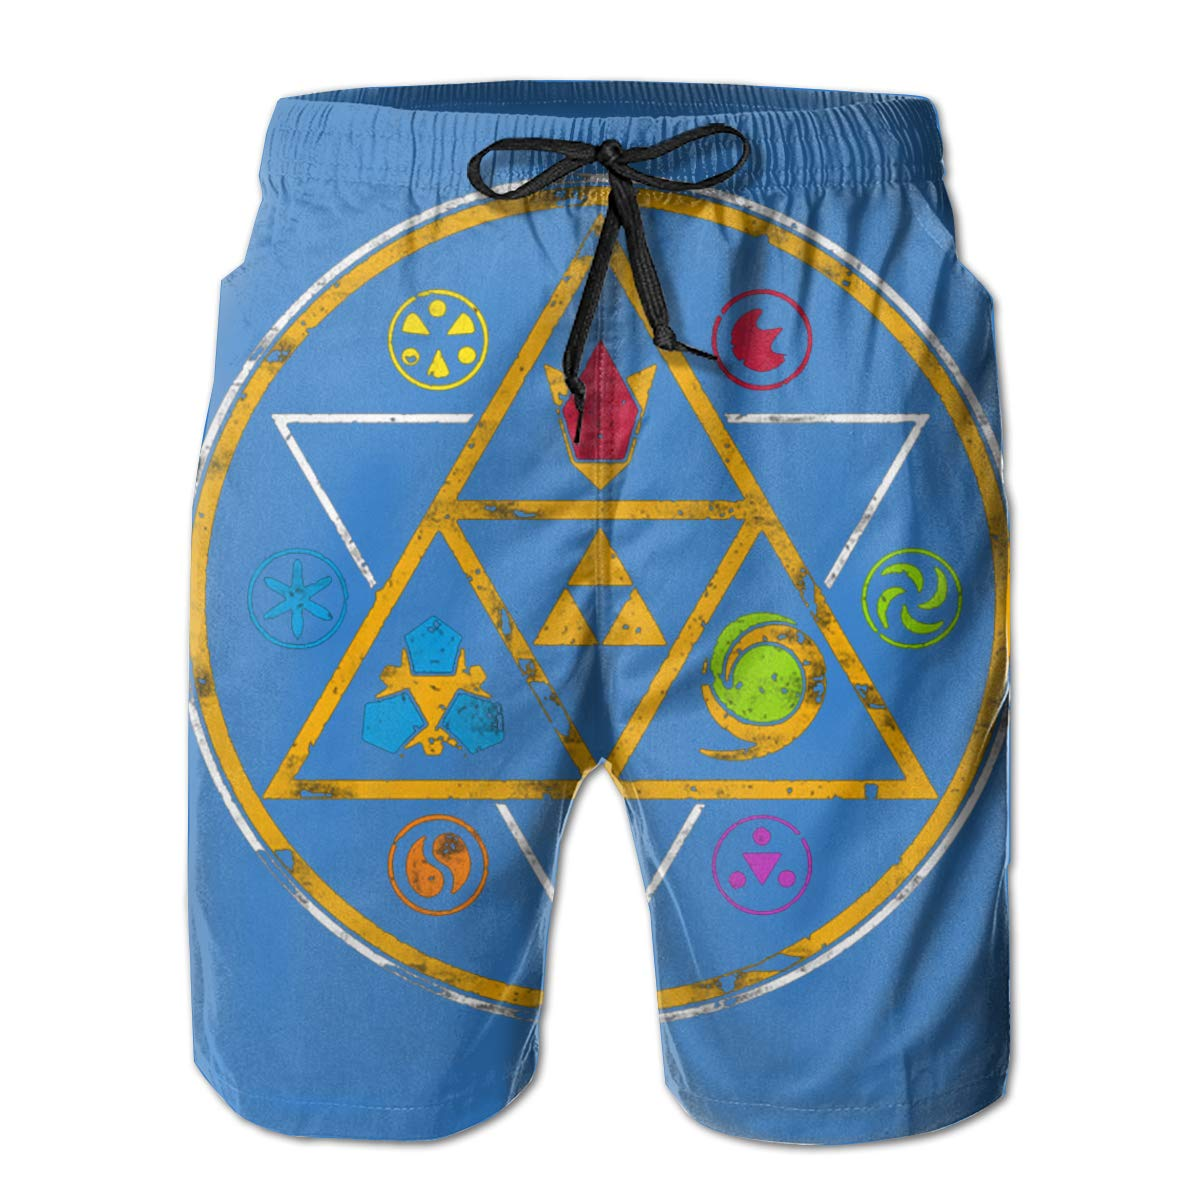 Me Mens Swim Trunks Board Shorts Reality And Ideals Sym Bols of Ti